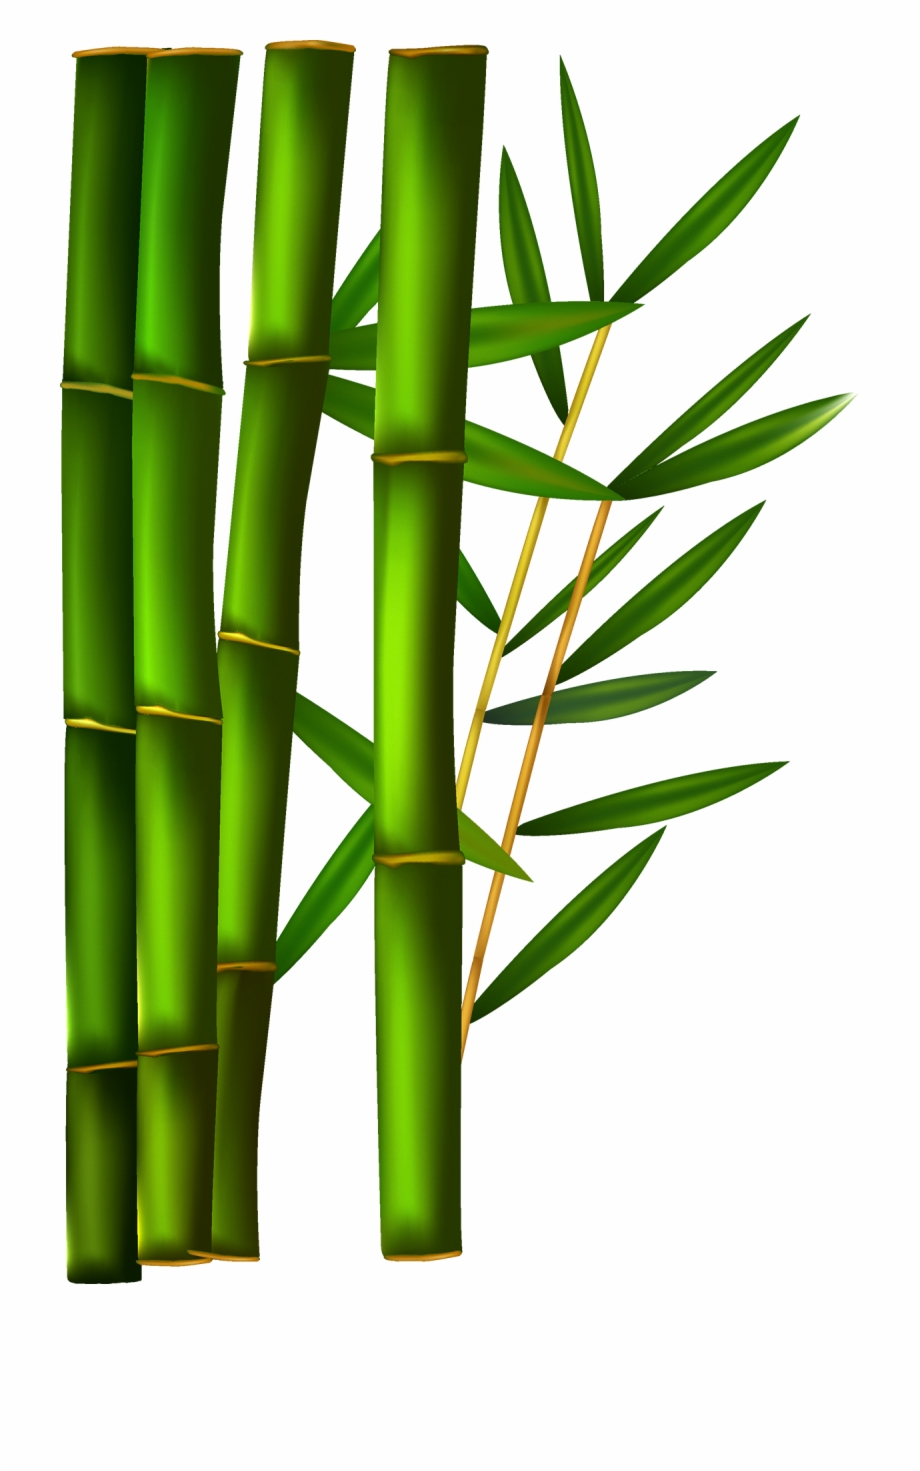 graphic Bamboo clipart. Transparent background free png.